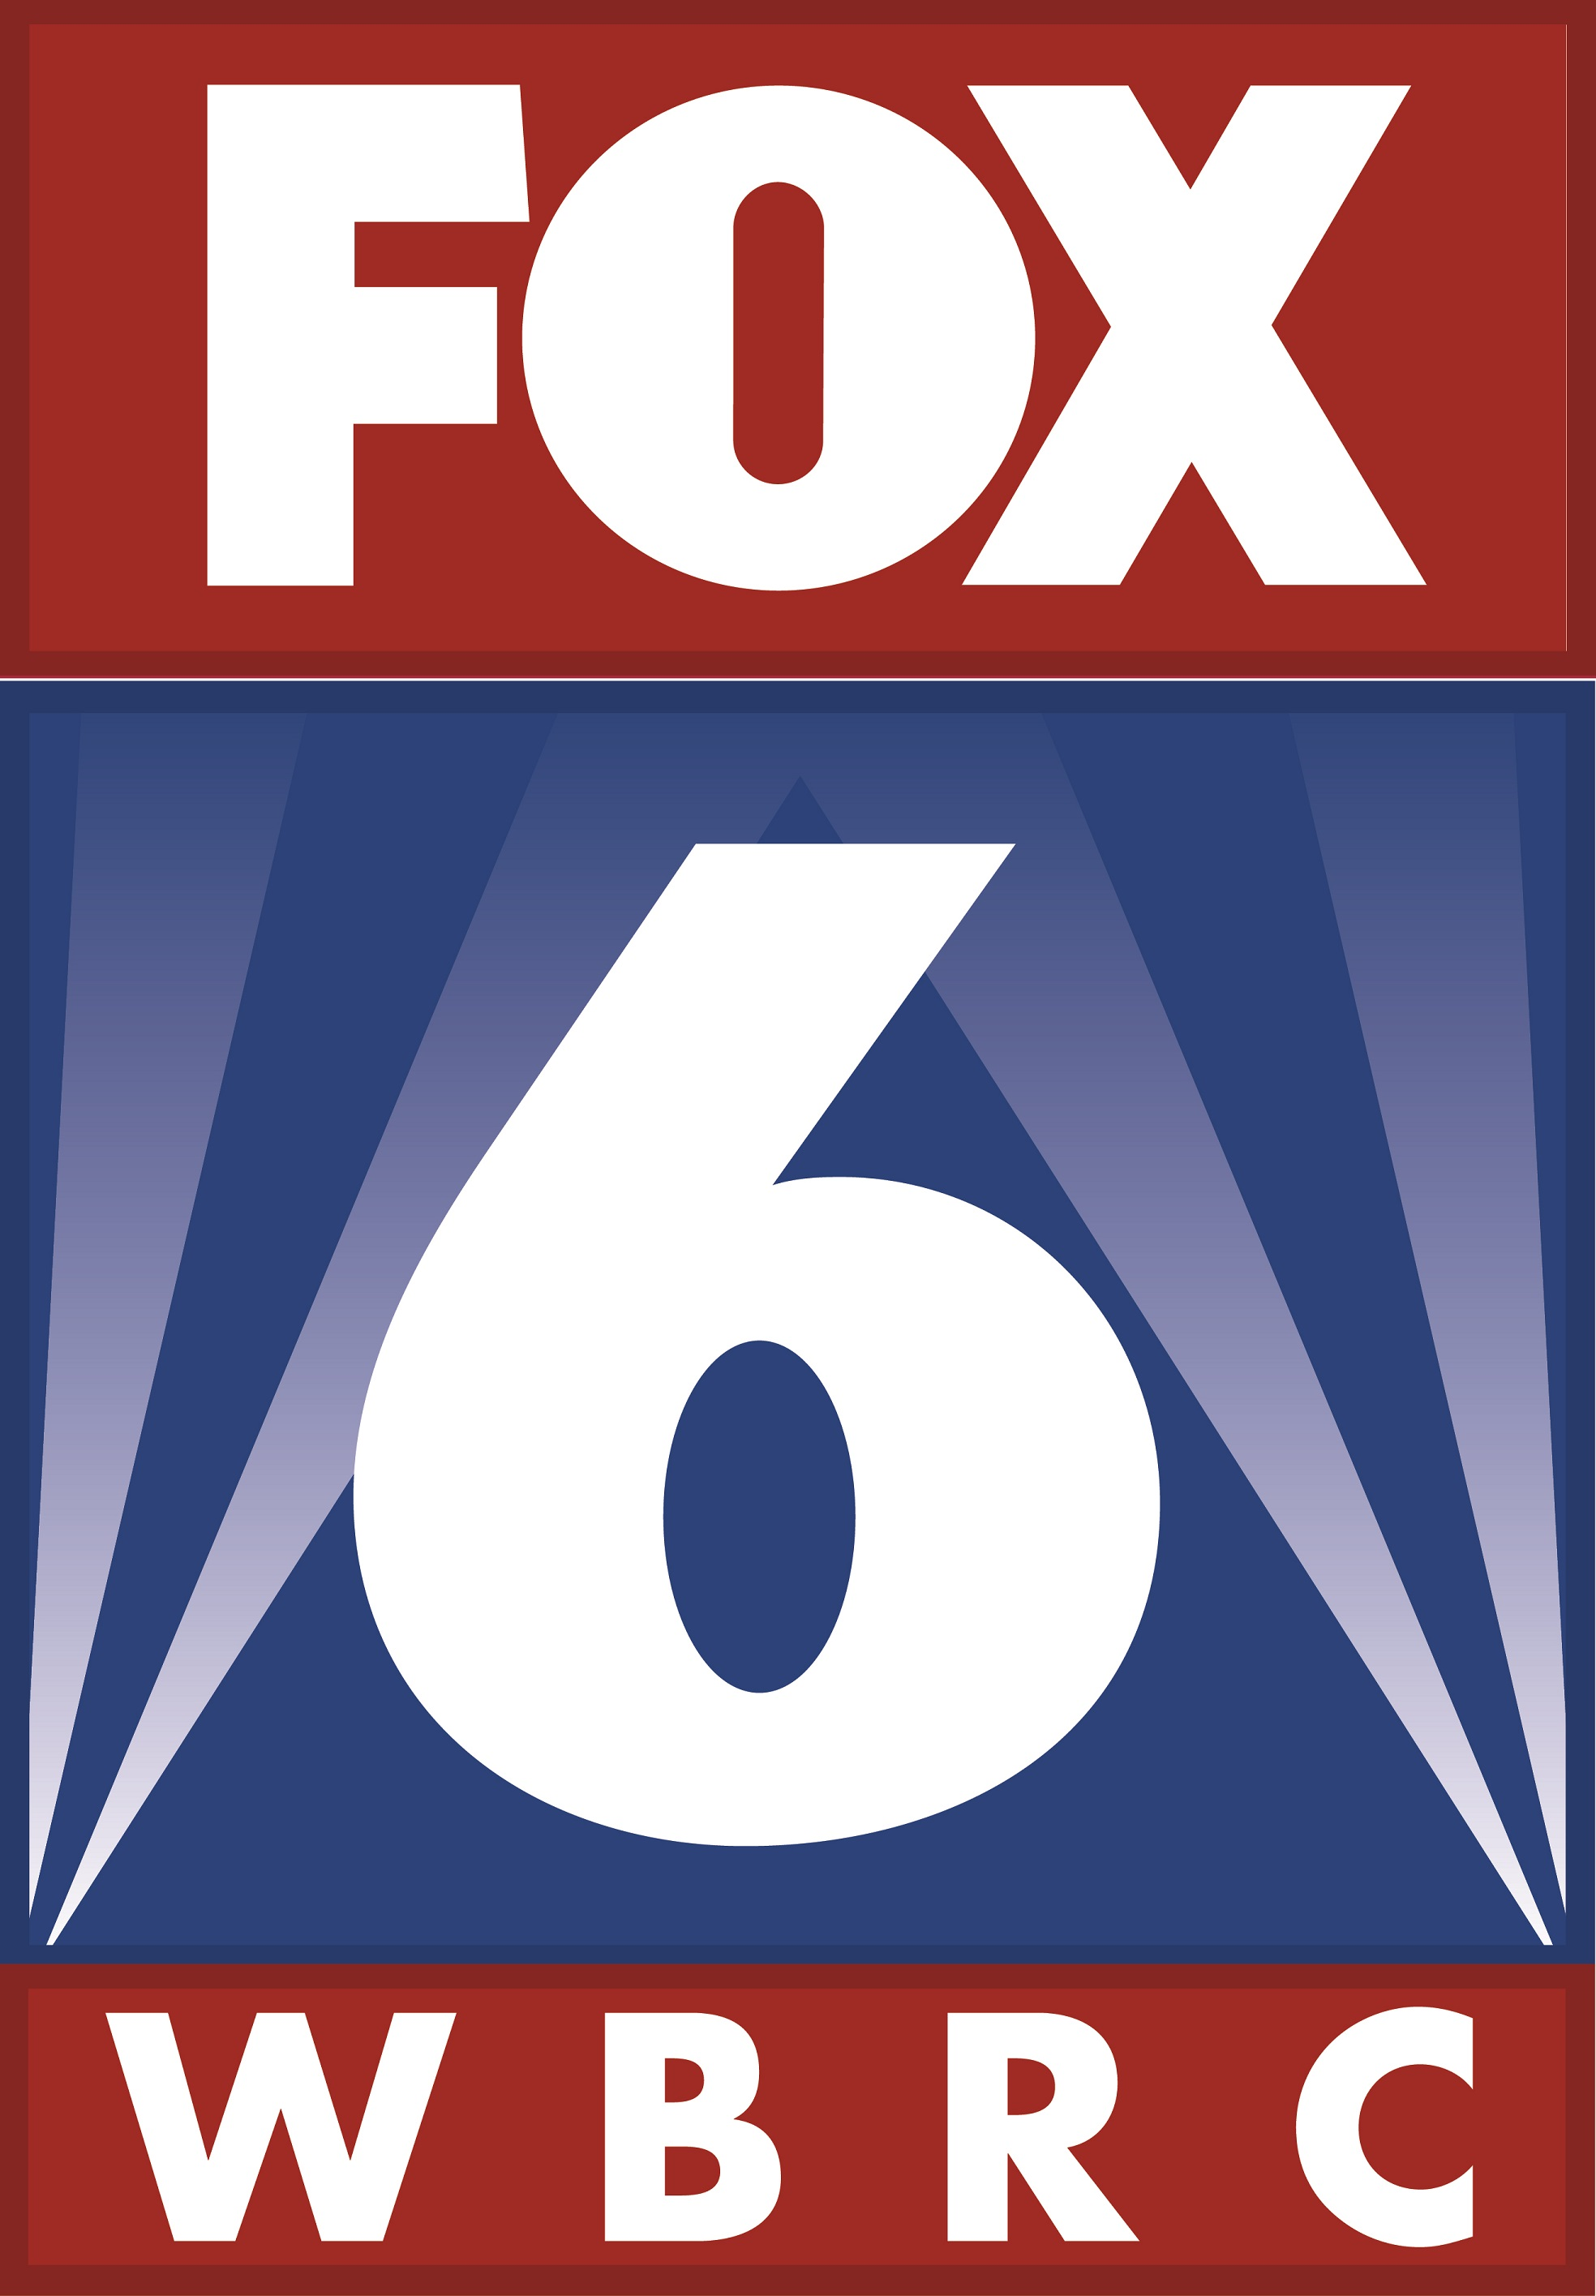 We're co-sponsoring Shred-A-Thons with Fox 6 this spring